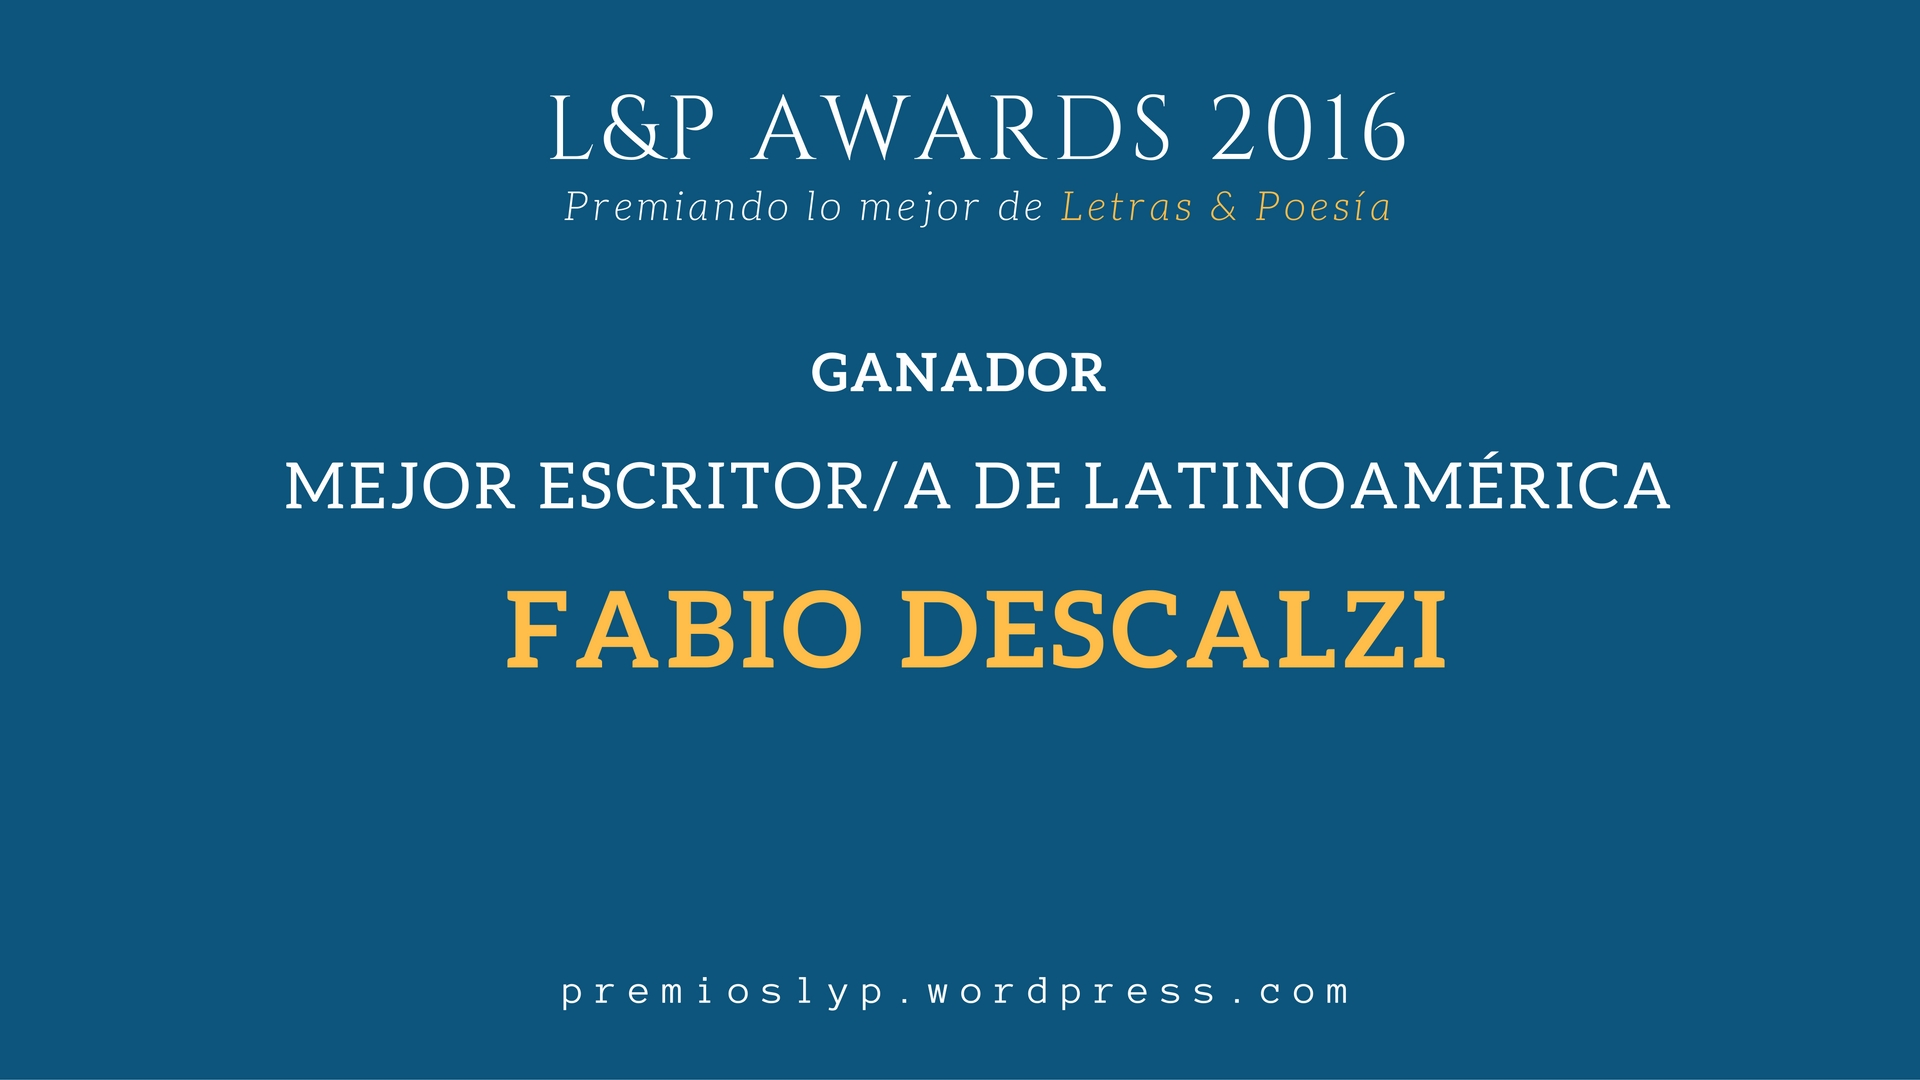 L&P-2016-LatAm